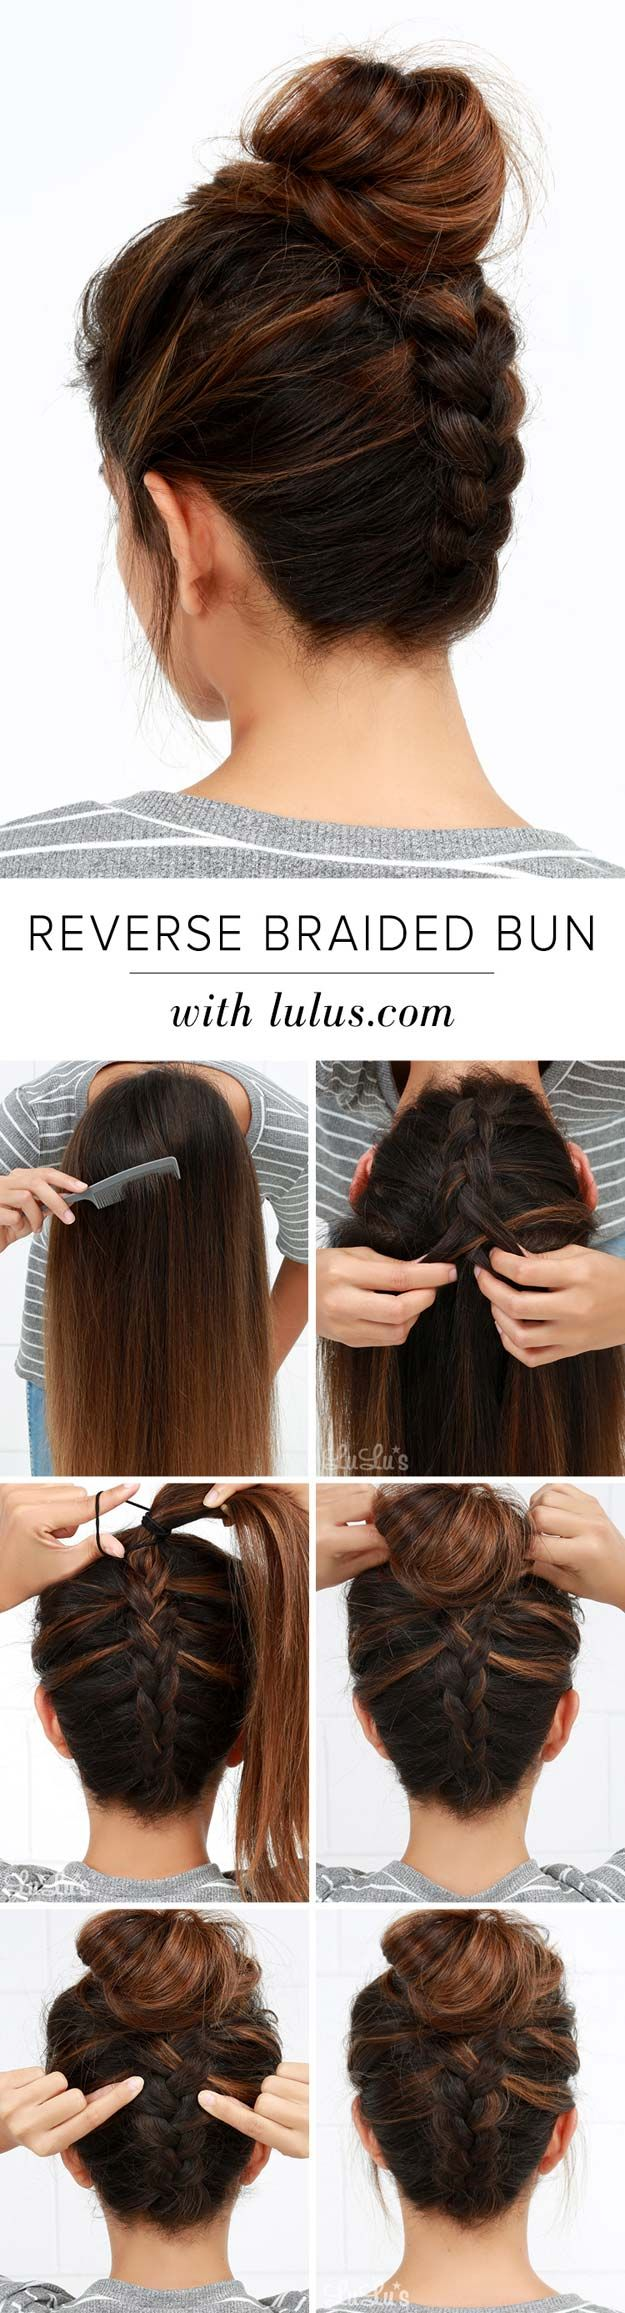 Fine 1000 Ideas About Easy Casual Hairstyles On Pinterest Messy Short Hairstyles Gunalazisus